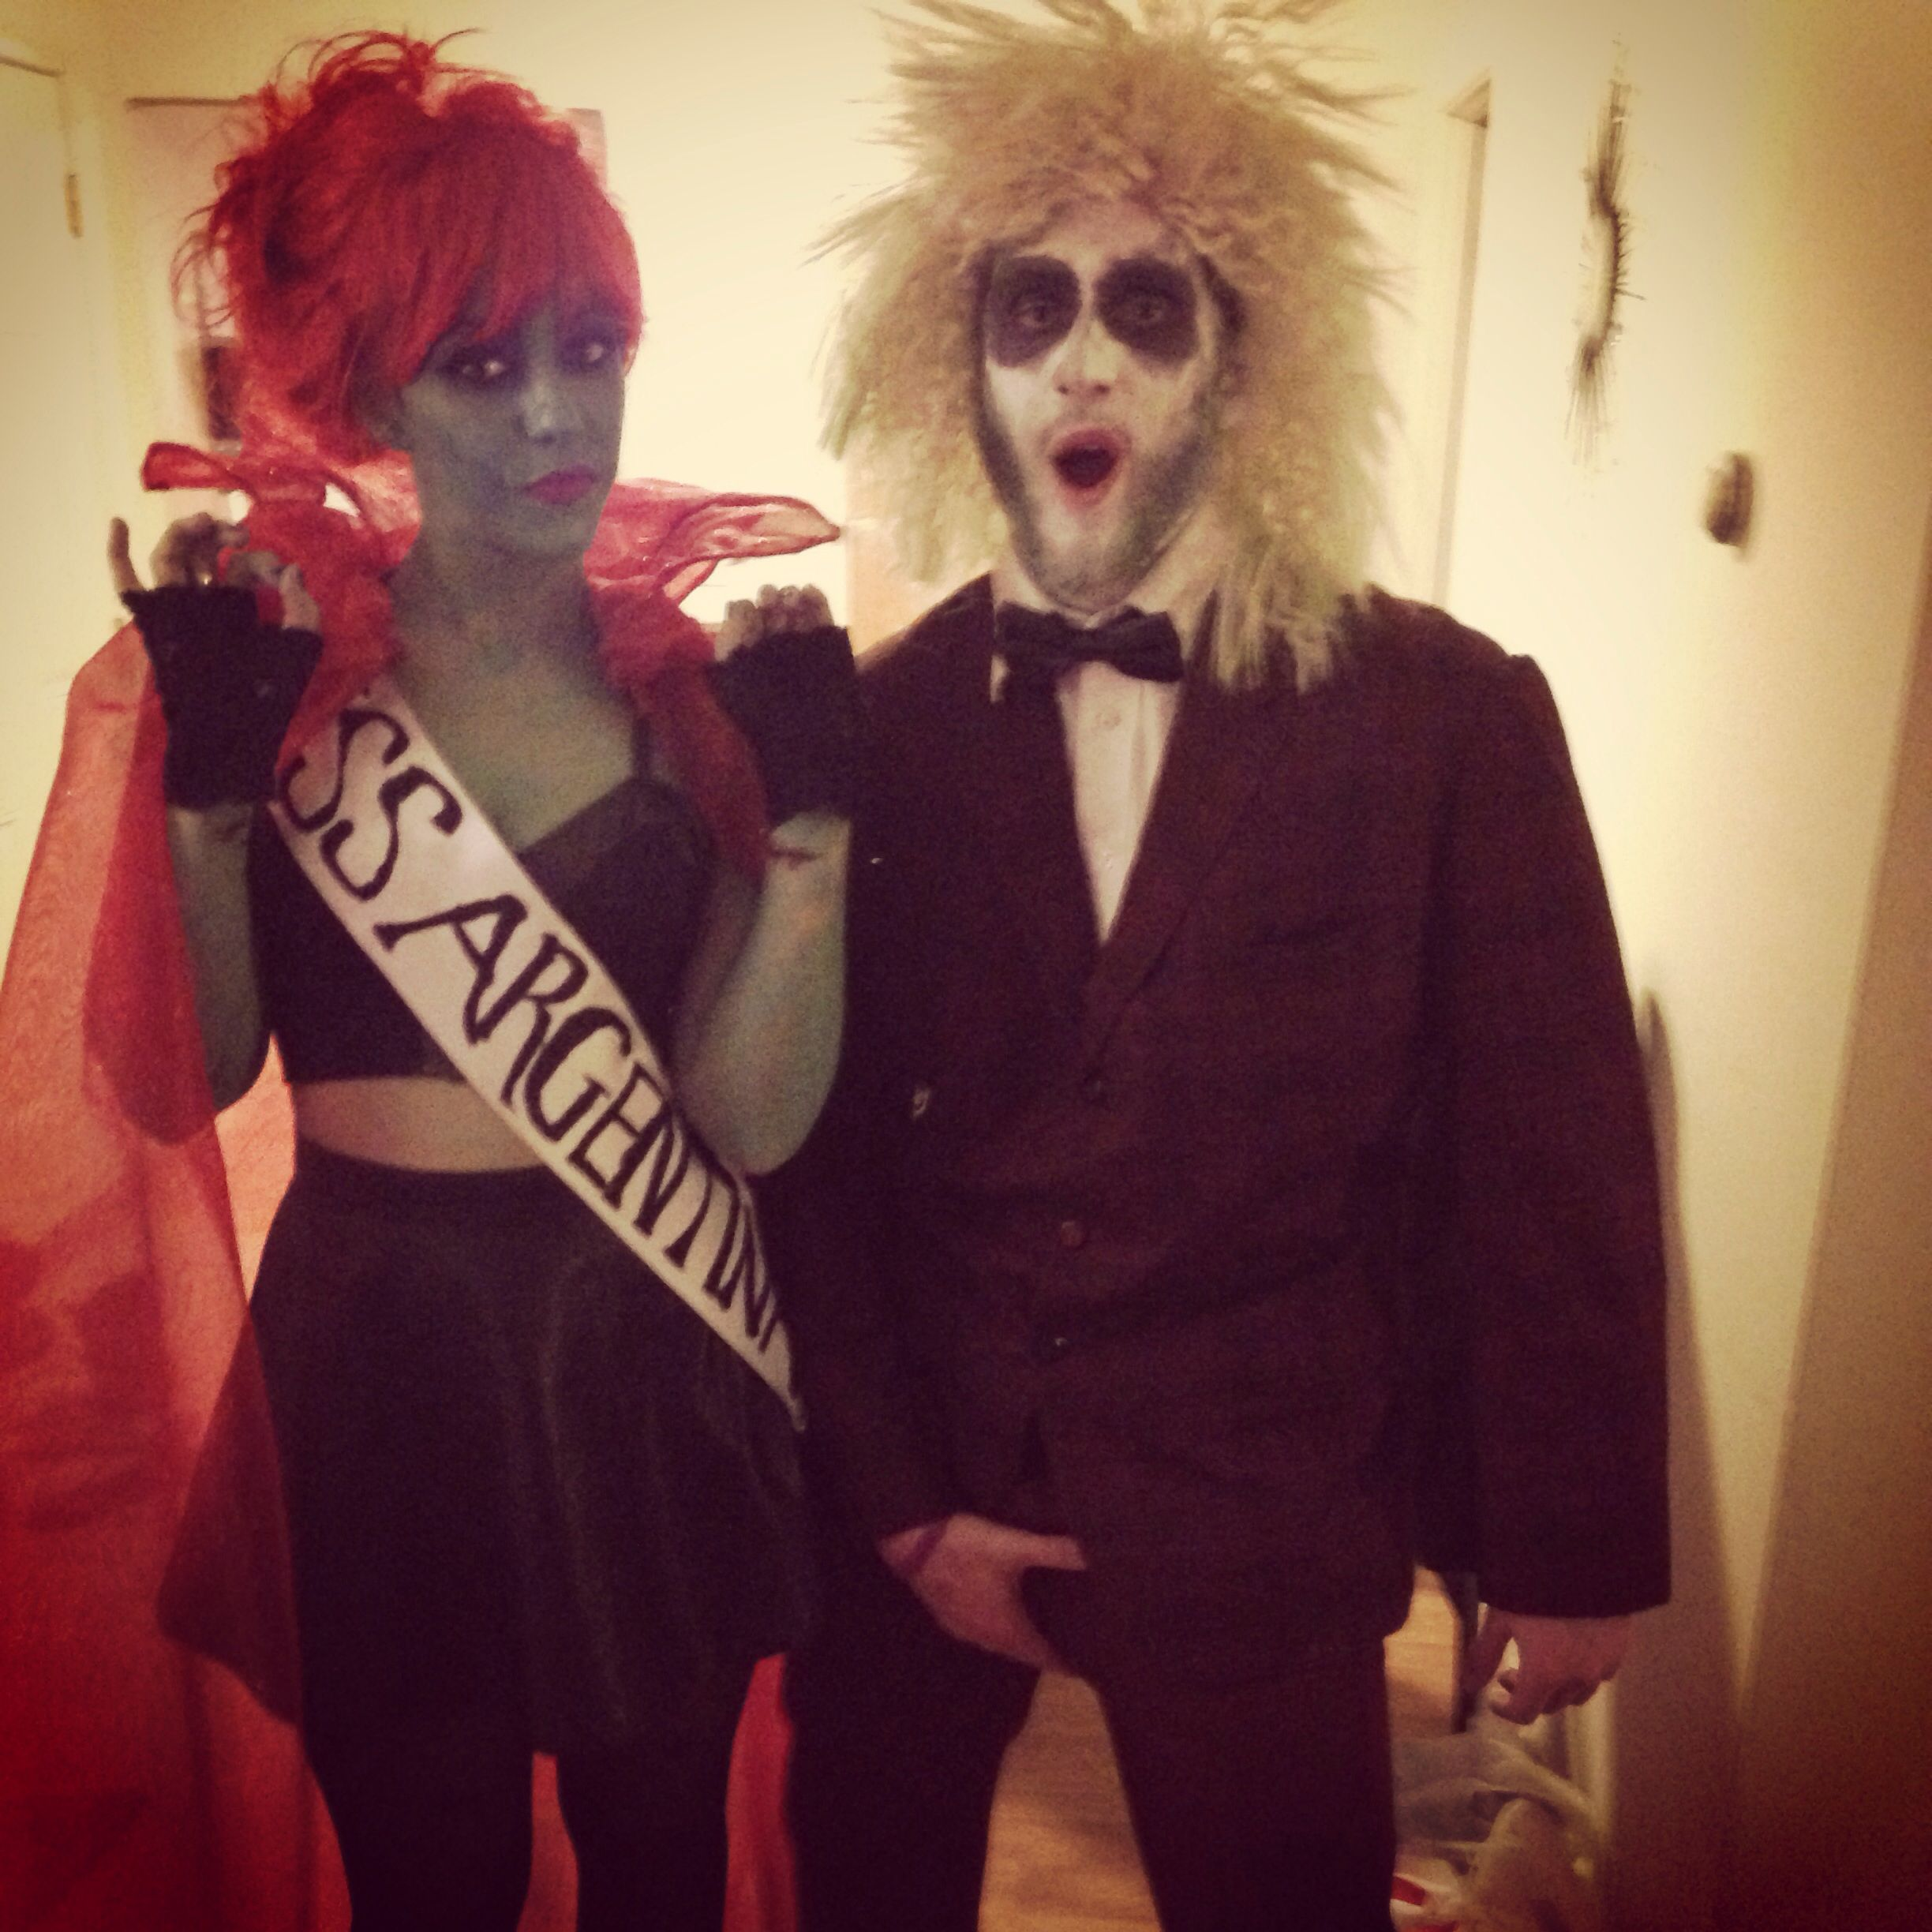 Beetlejuice and miss Argentina Halloween costume DIY BEST COSTUME EVER & Beetlejuice and miss Argentina Halloween costume DIY BEST COSTUME ...